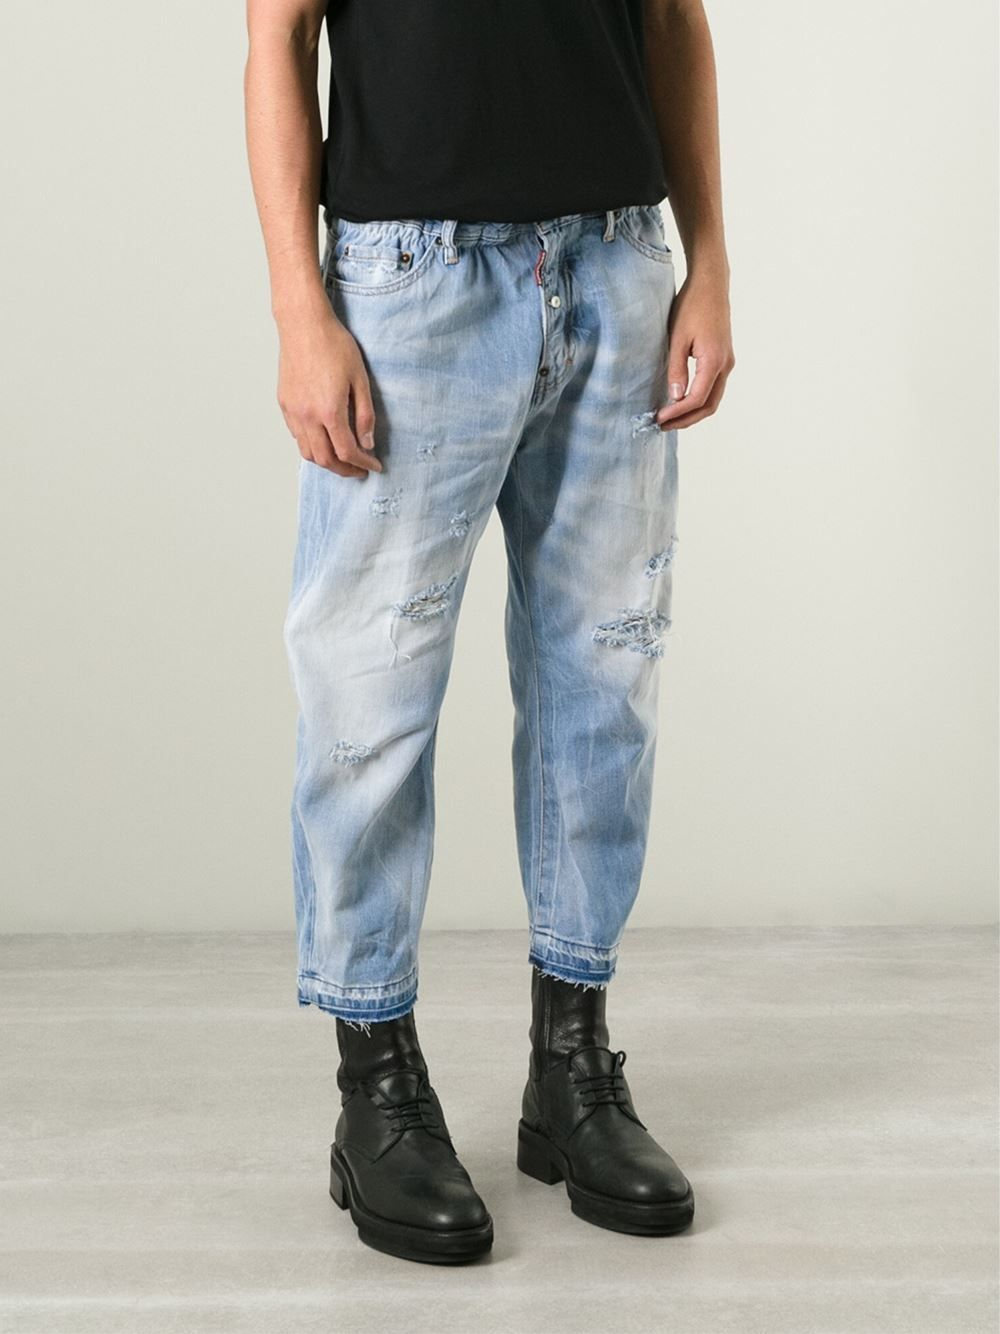 Square cropped mens denim jeans, with slight distress | Denim ...